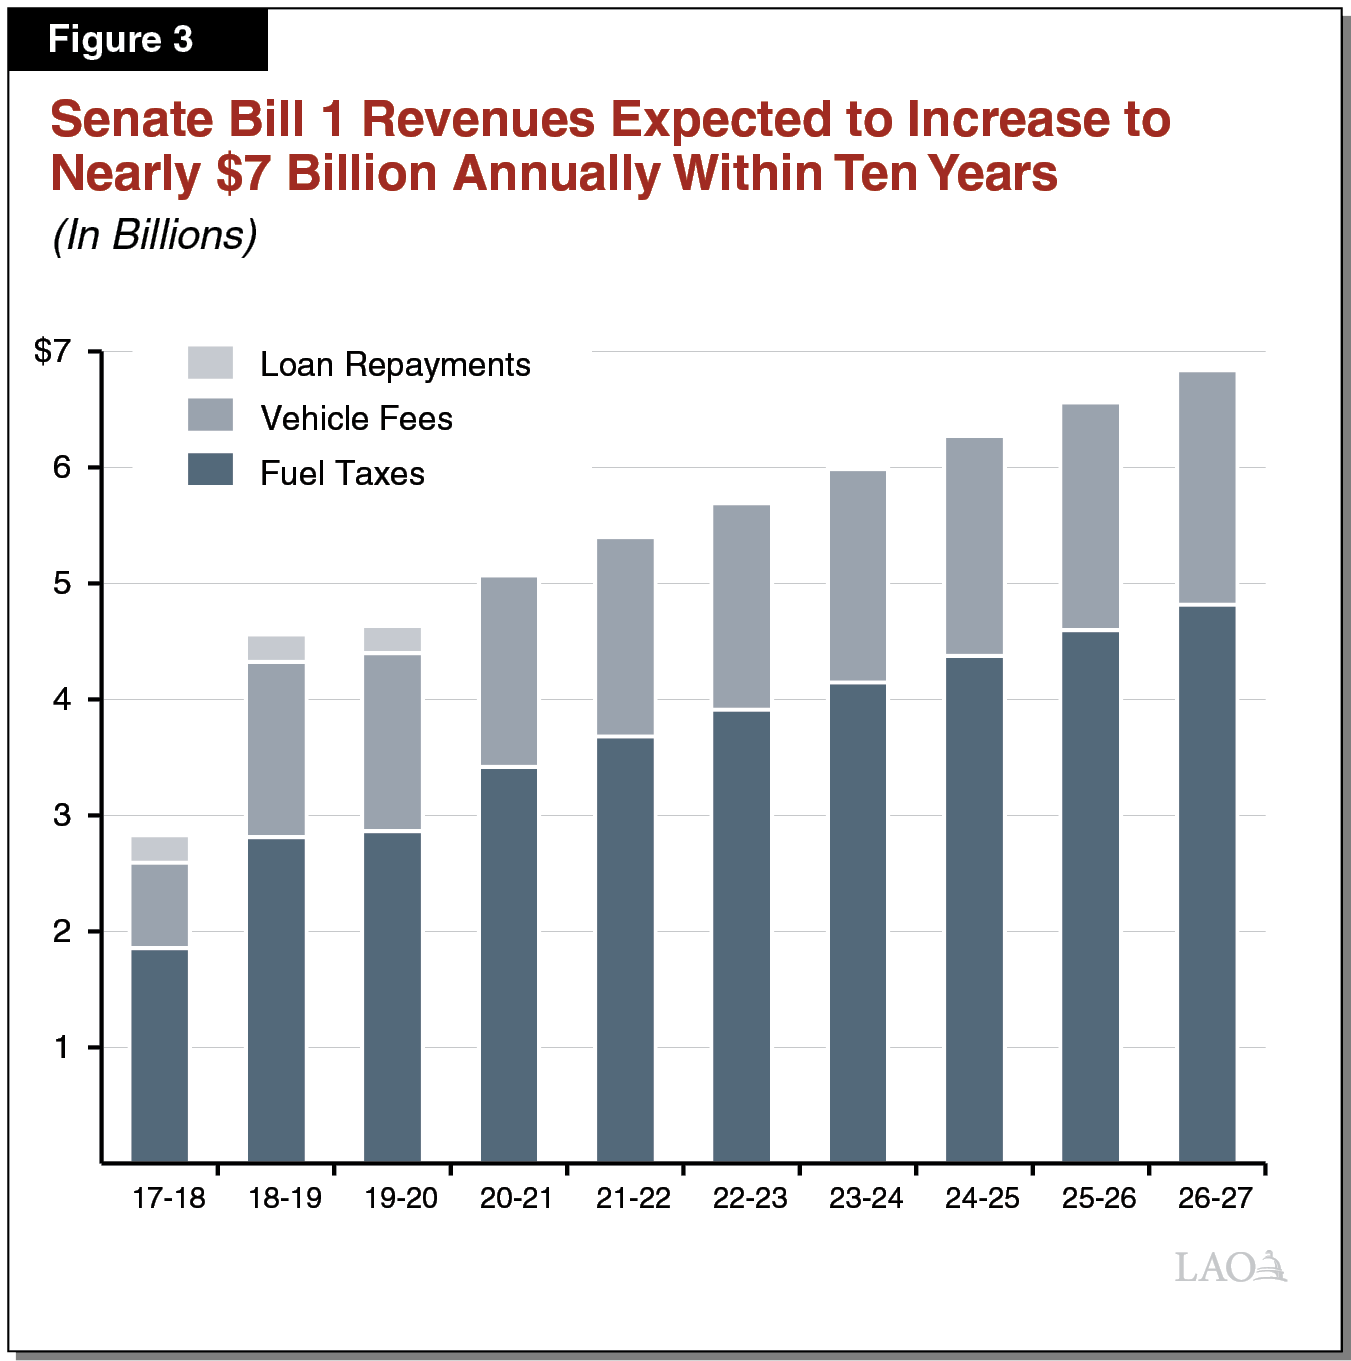 Figure 3 - Senate Bill 1 Revenues Expected to Increase to Nearly 7 Billion Annually Within Ten Years